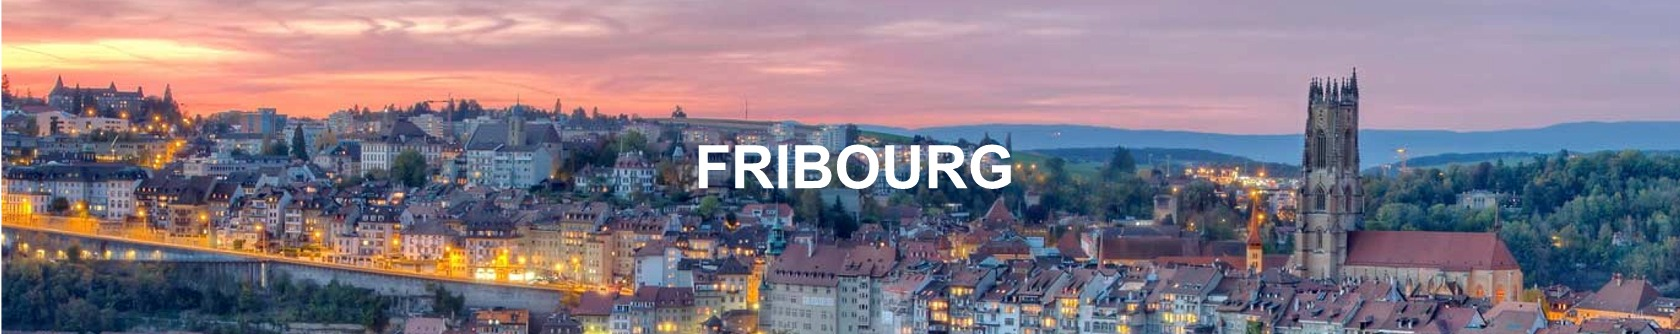 evolution prix immobilier fribourg 2019